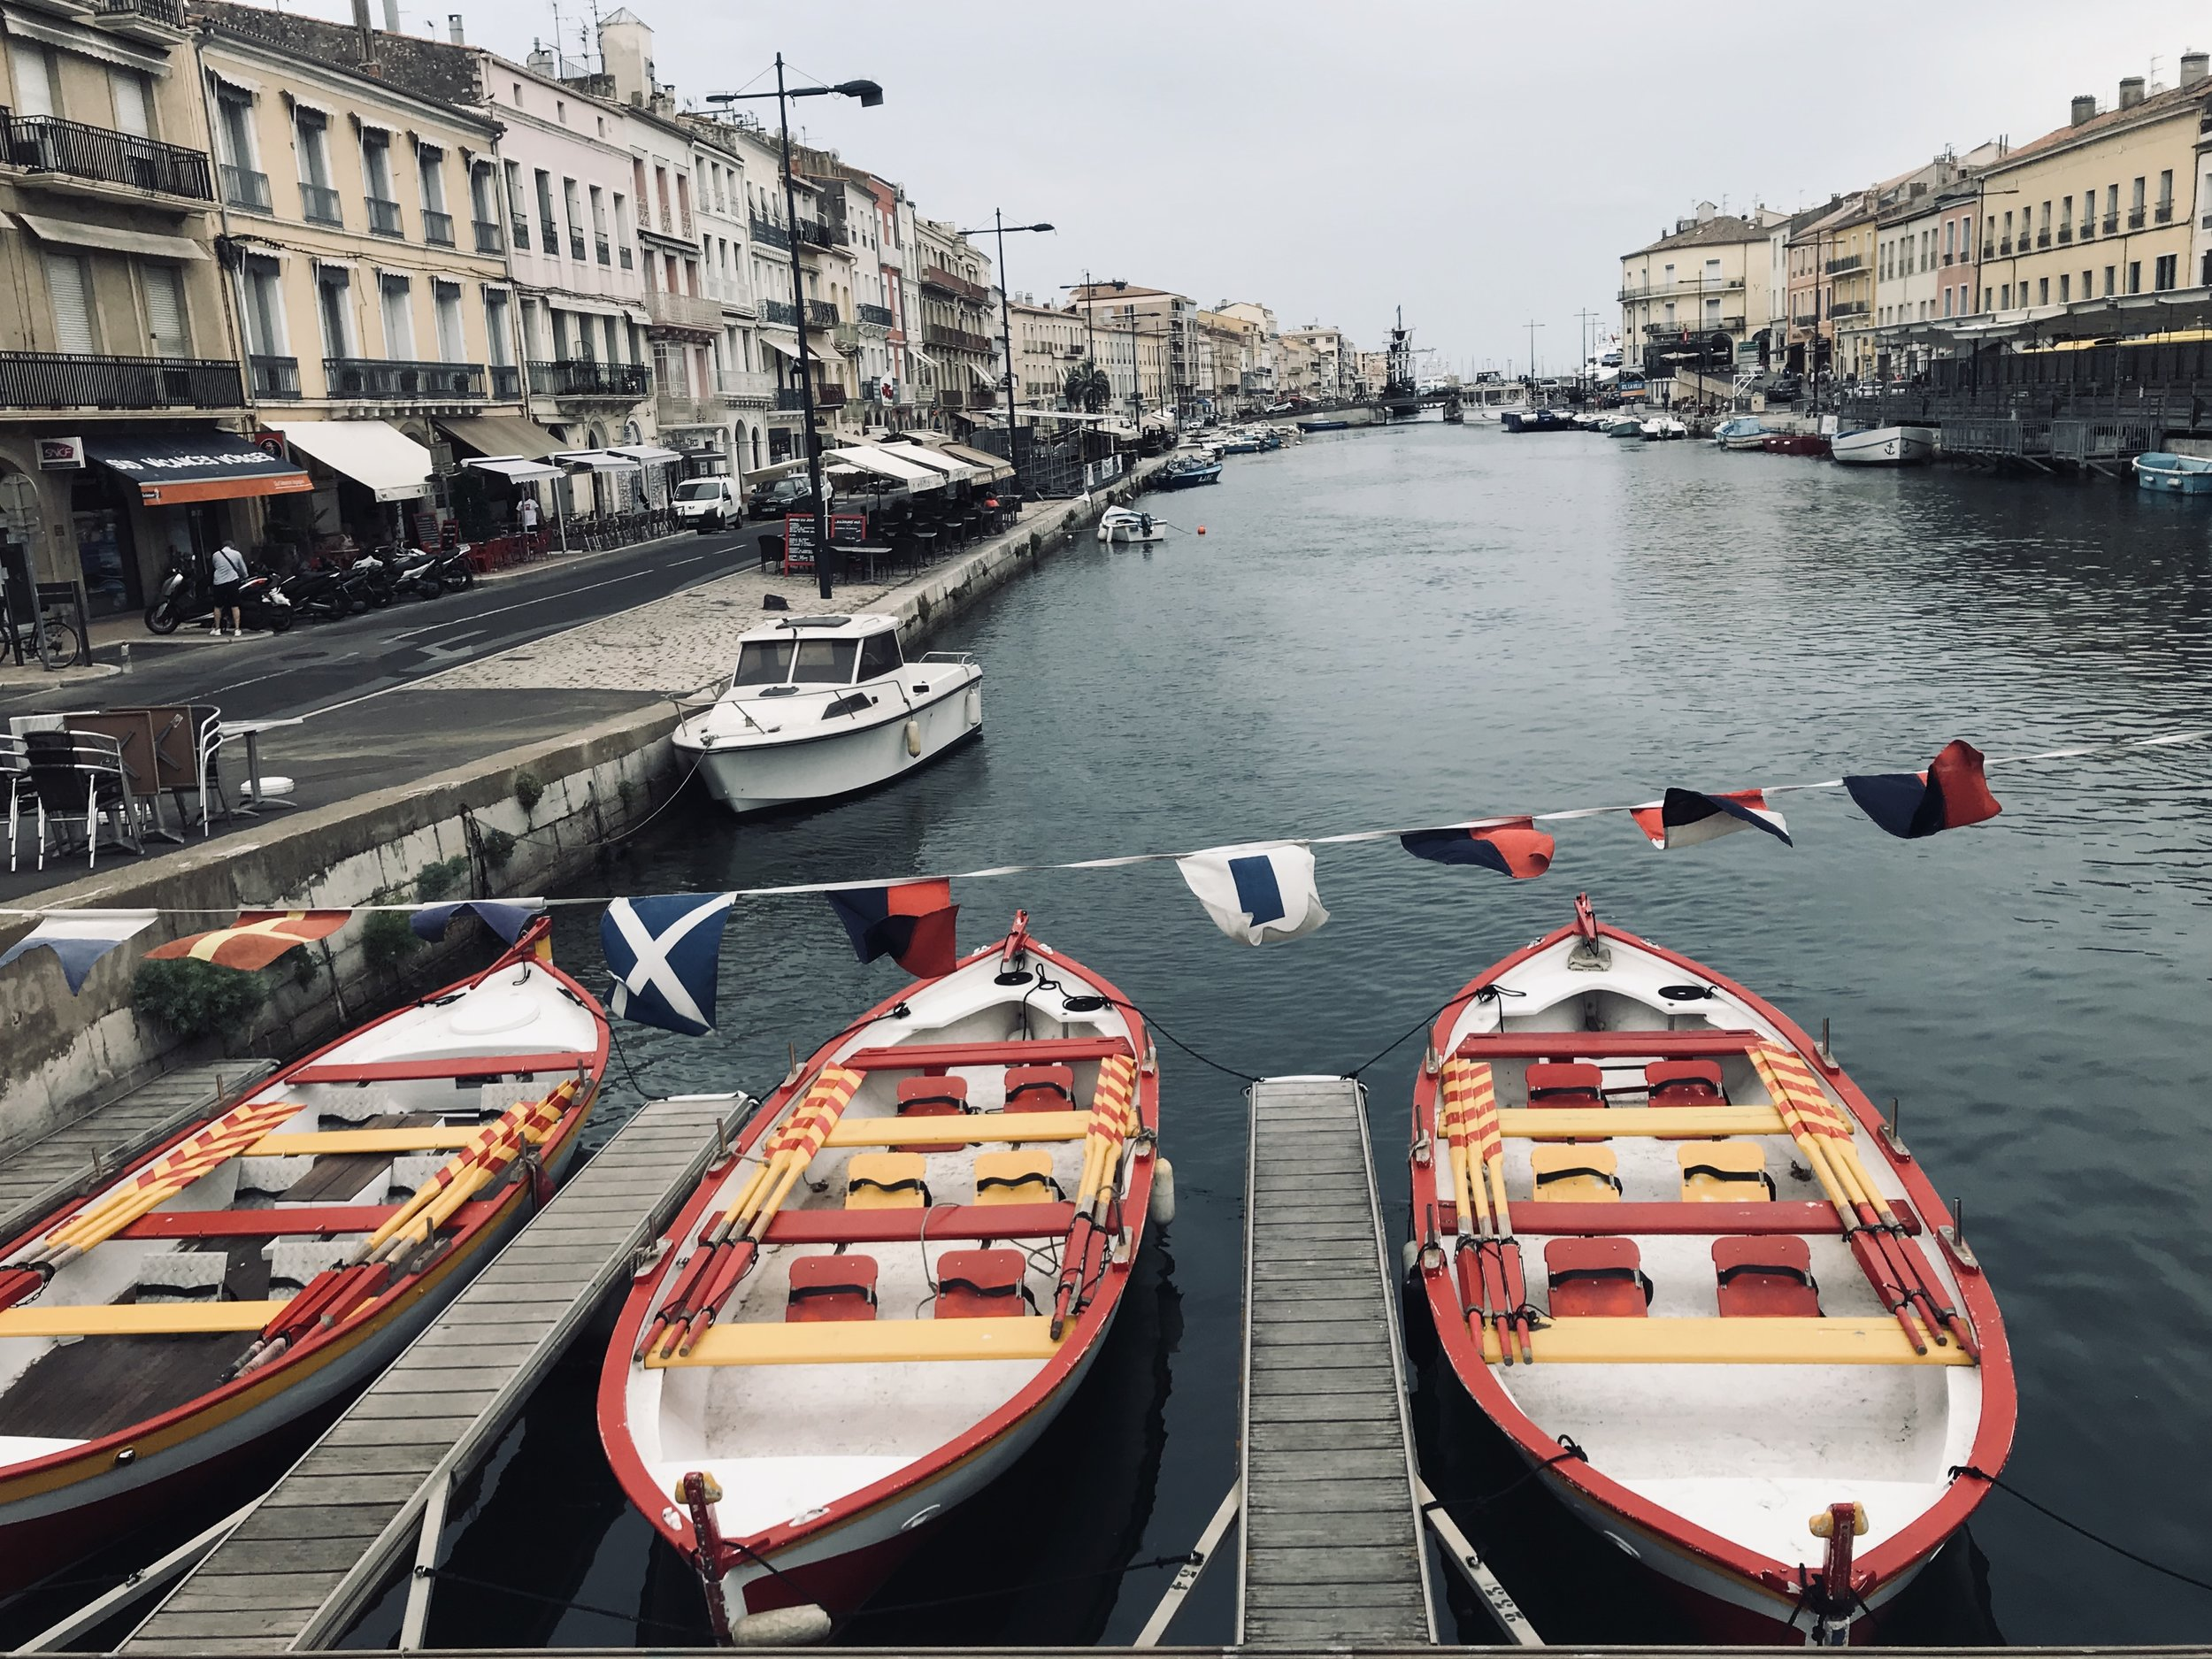 One of the scenic views of a Sete canal with colorful touring boats.